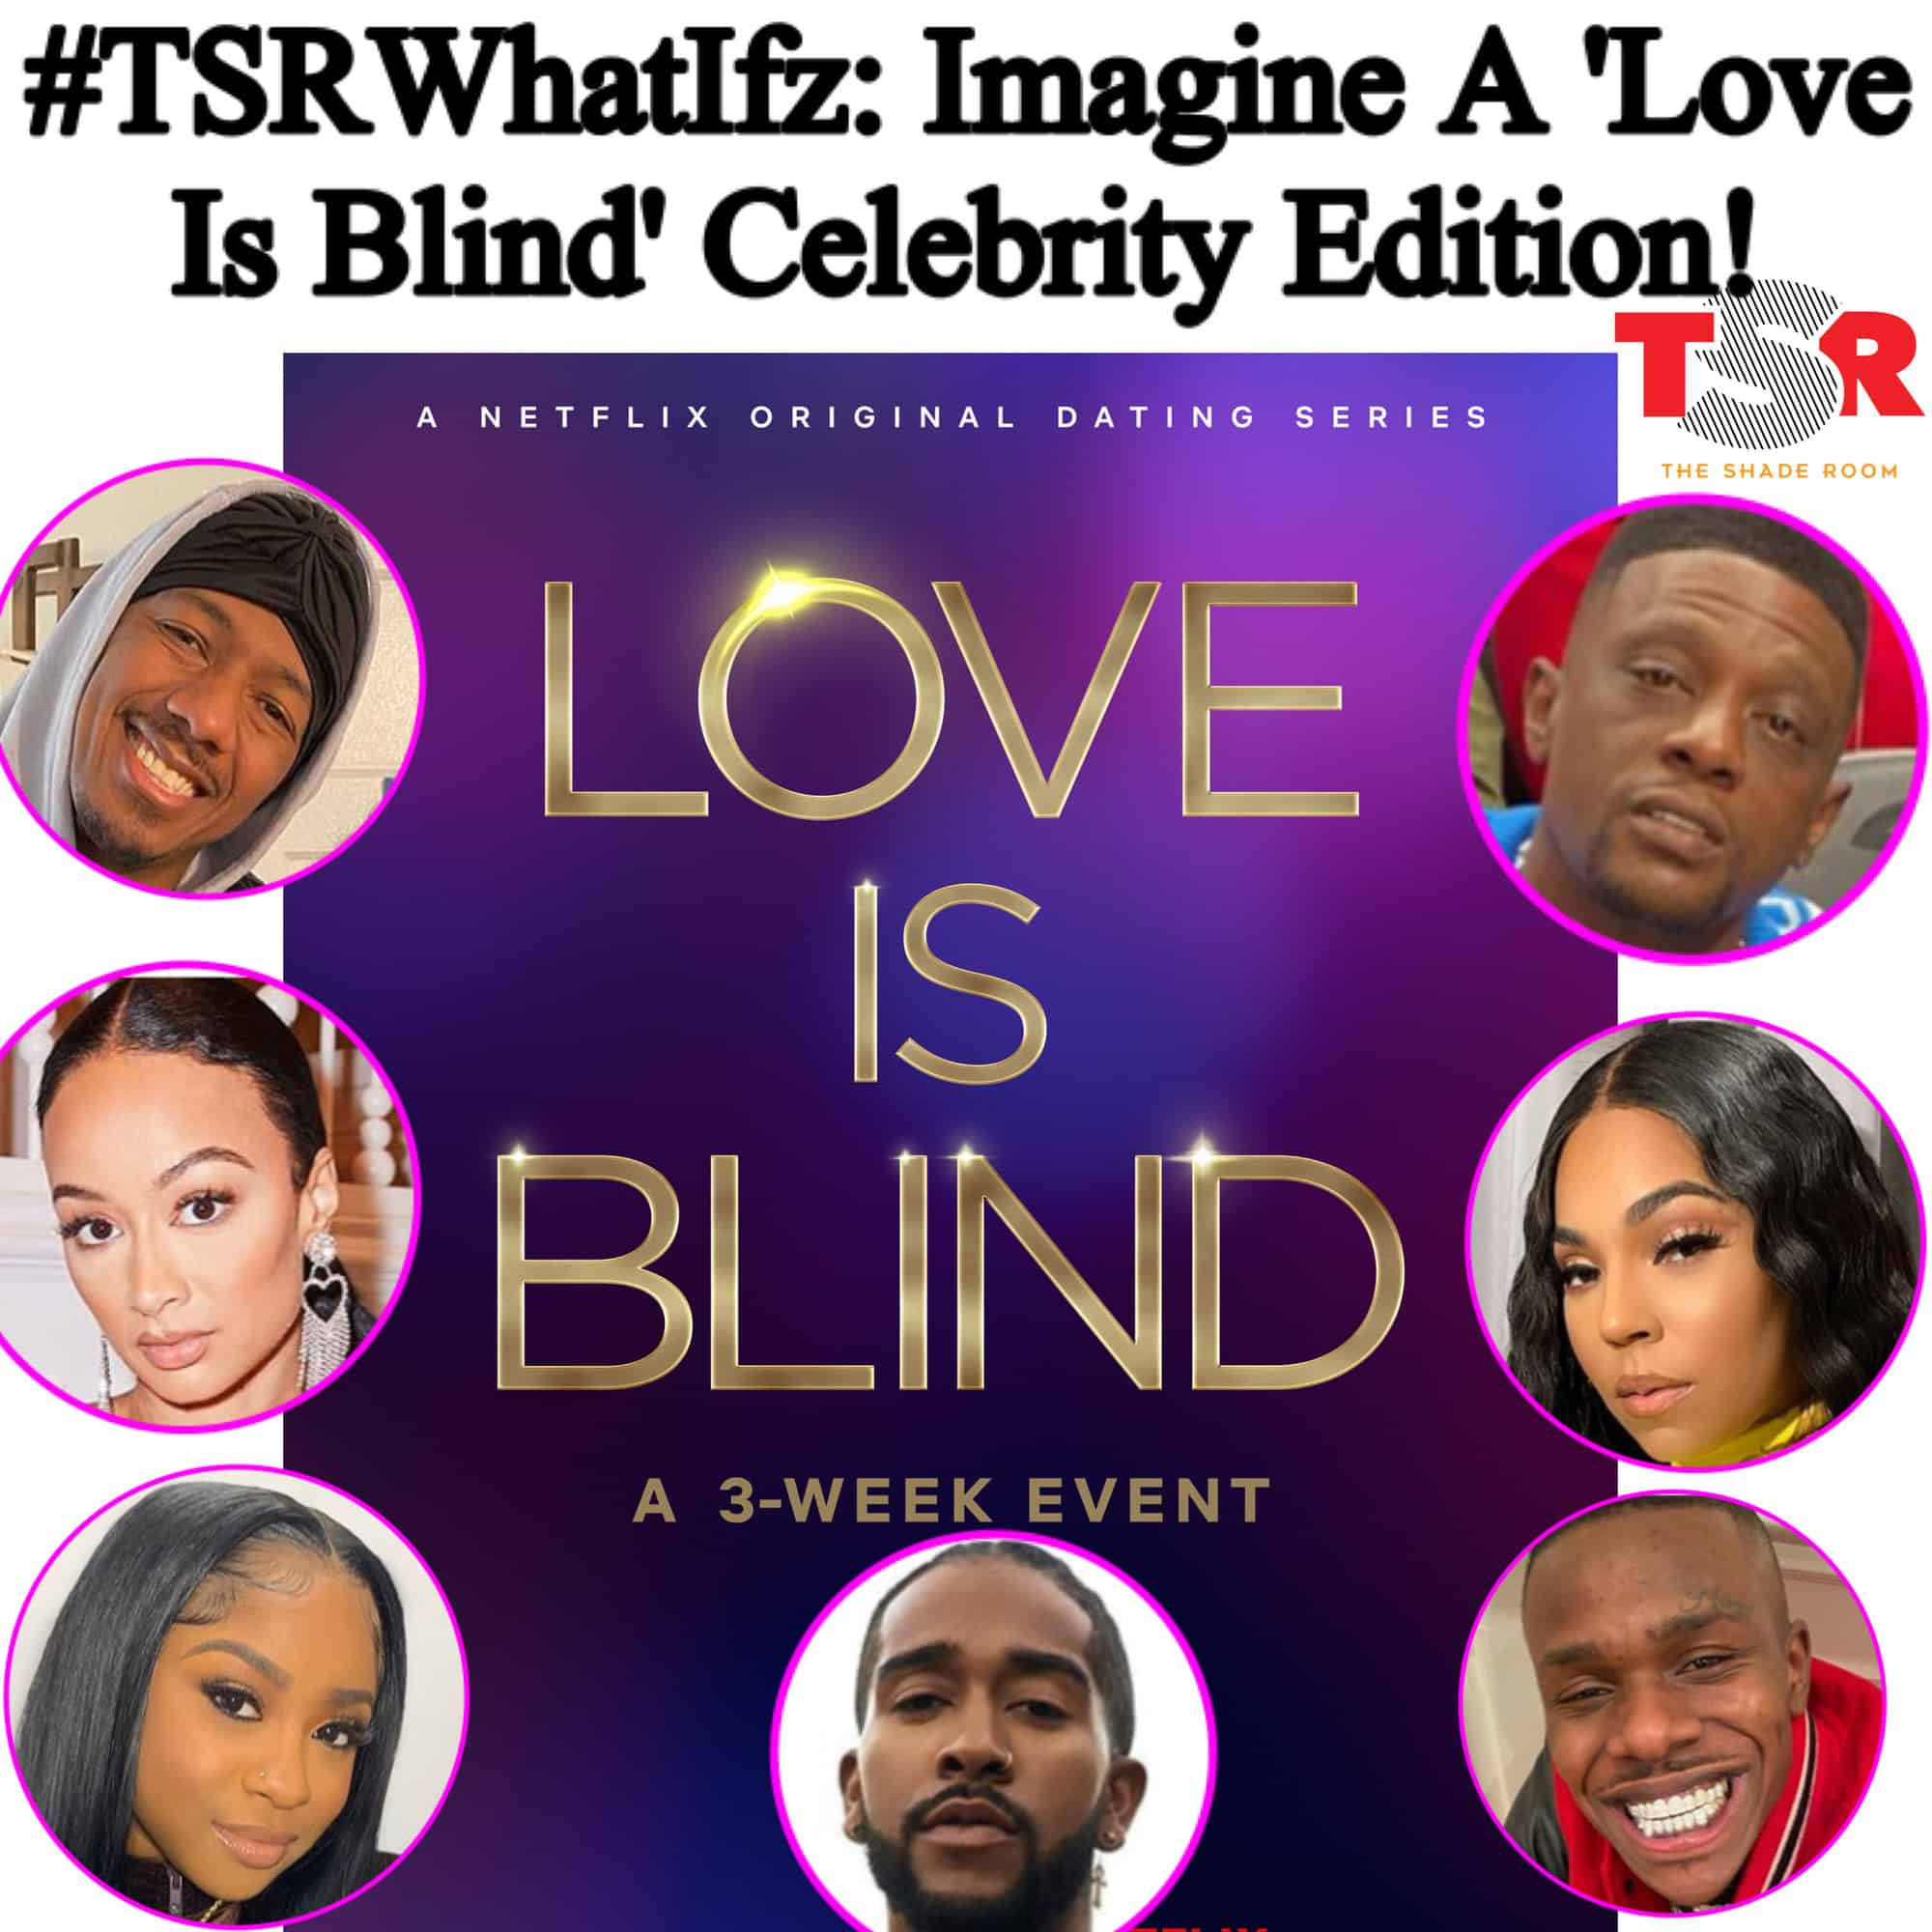 Love is blind celebrity edition